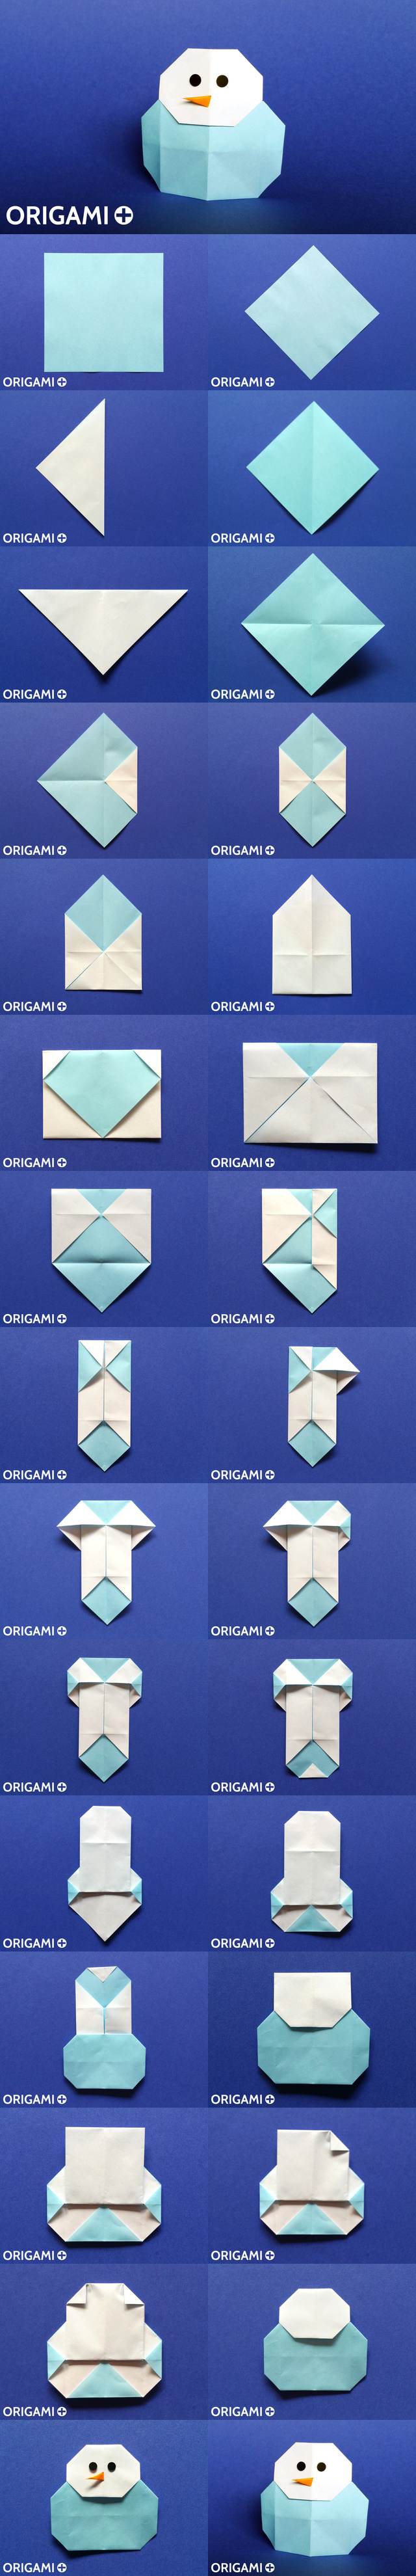 A Very Cool Origami Snowman Easy To Fold And Fun To Decorate